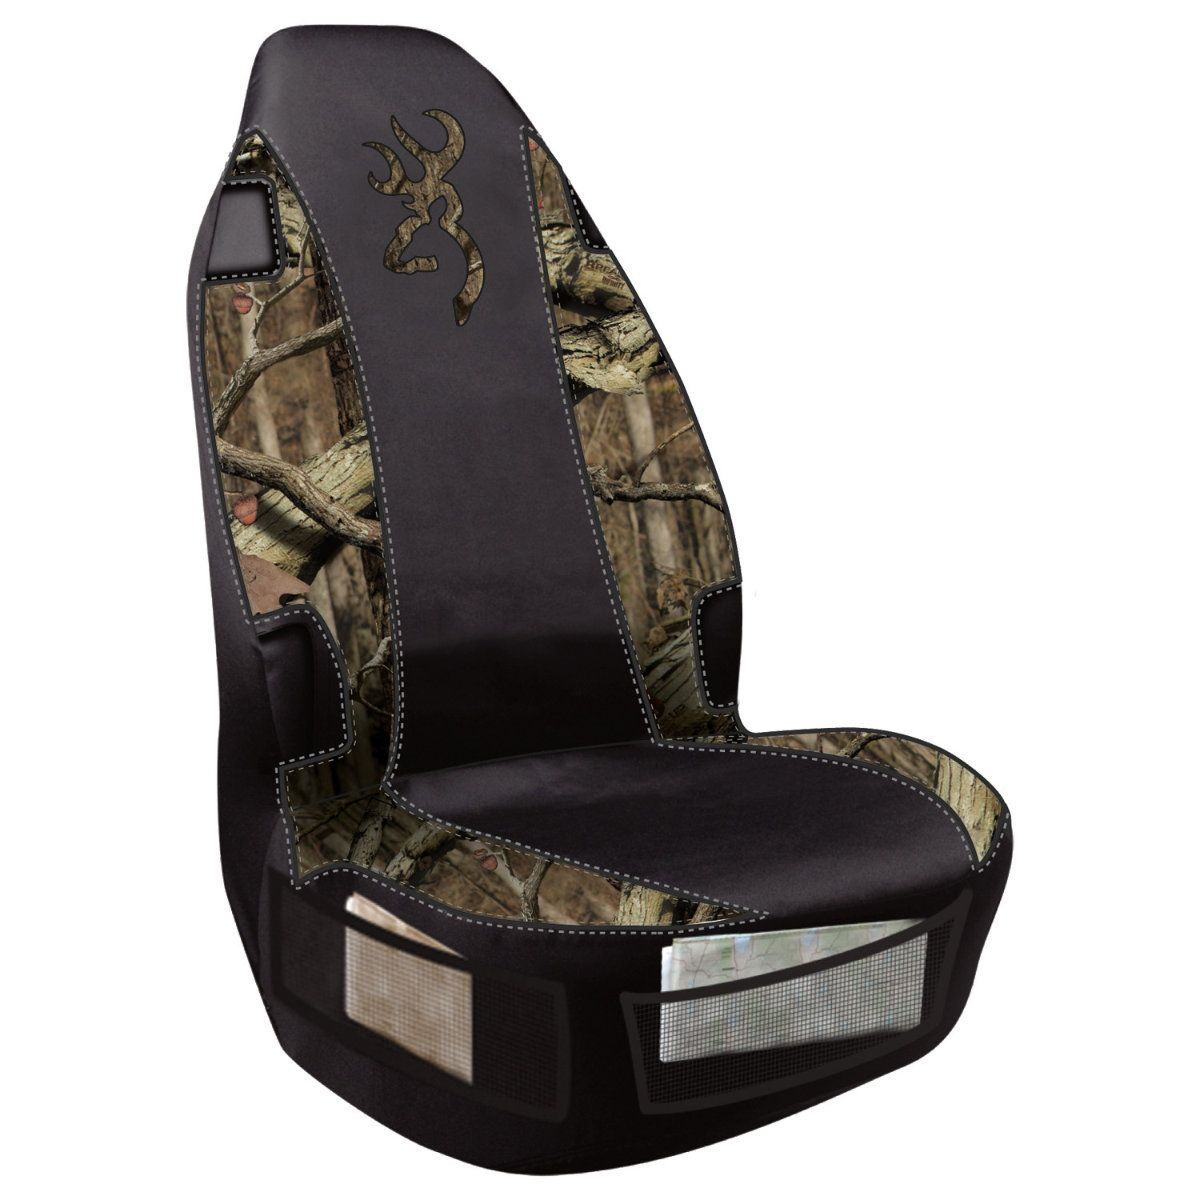 Browning Universal Bucket Seat Cover 451502 Gander Mountain With Images Camo Seat Covers